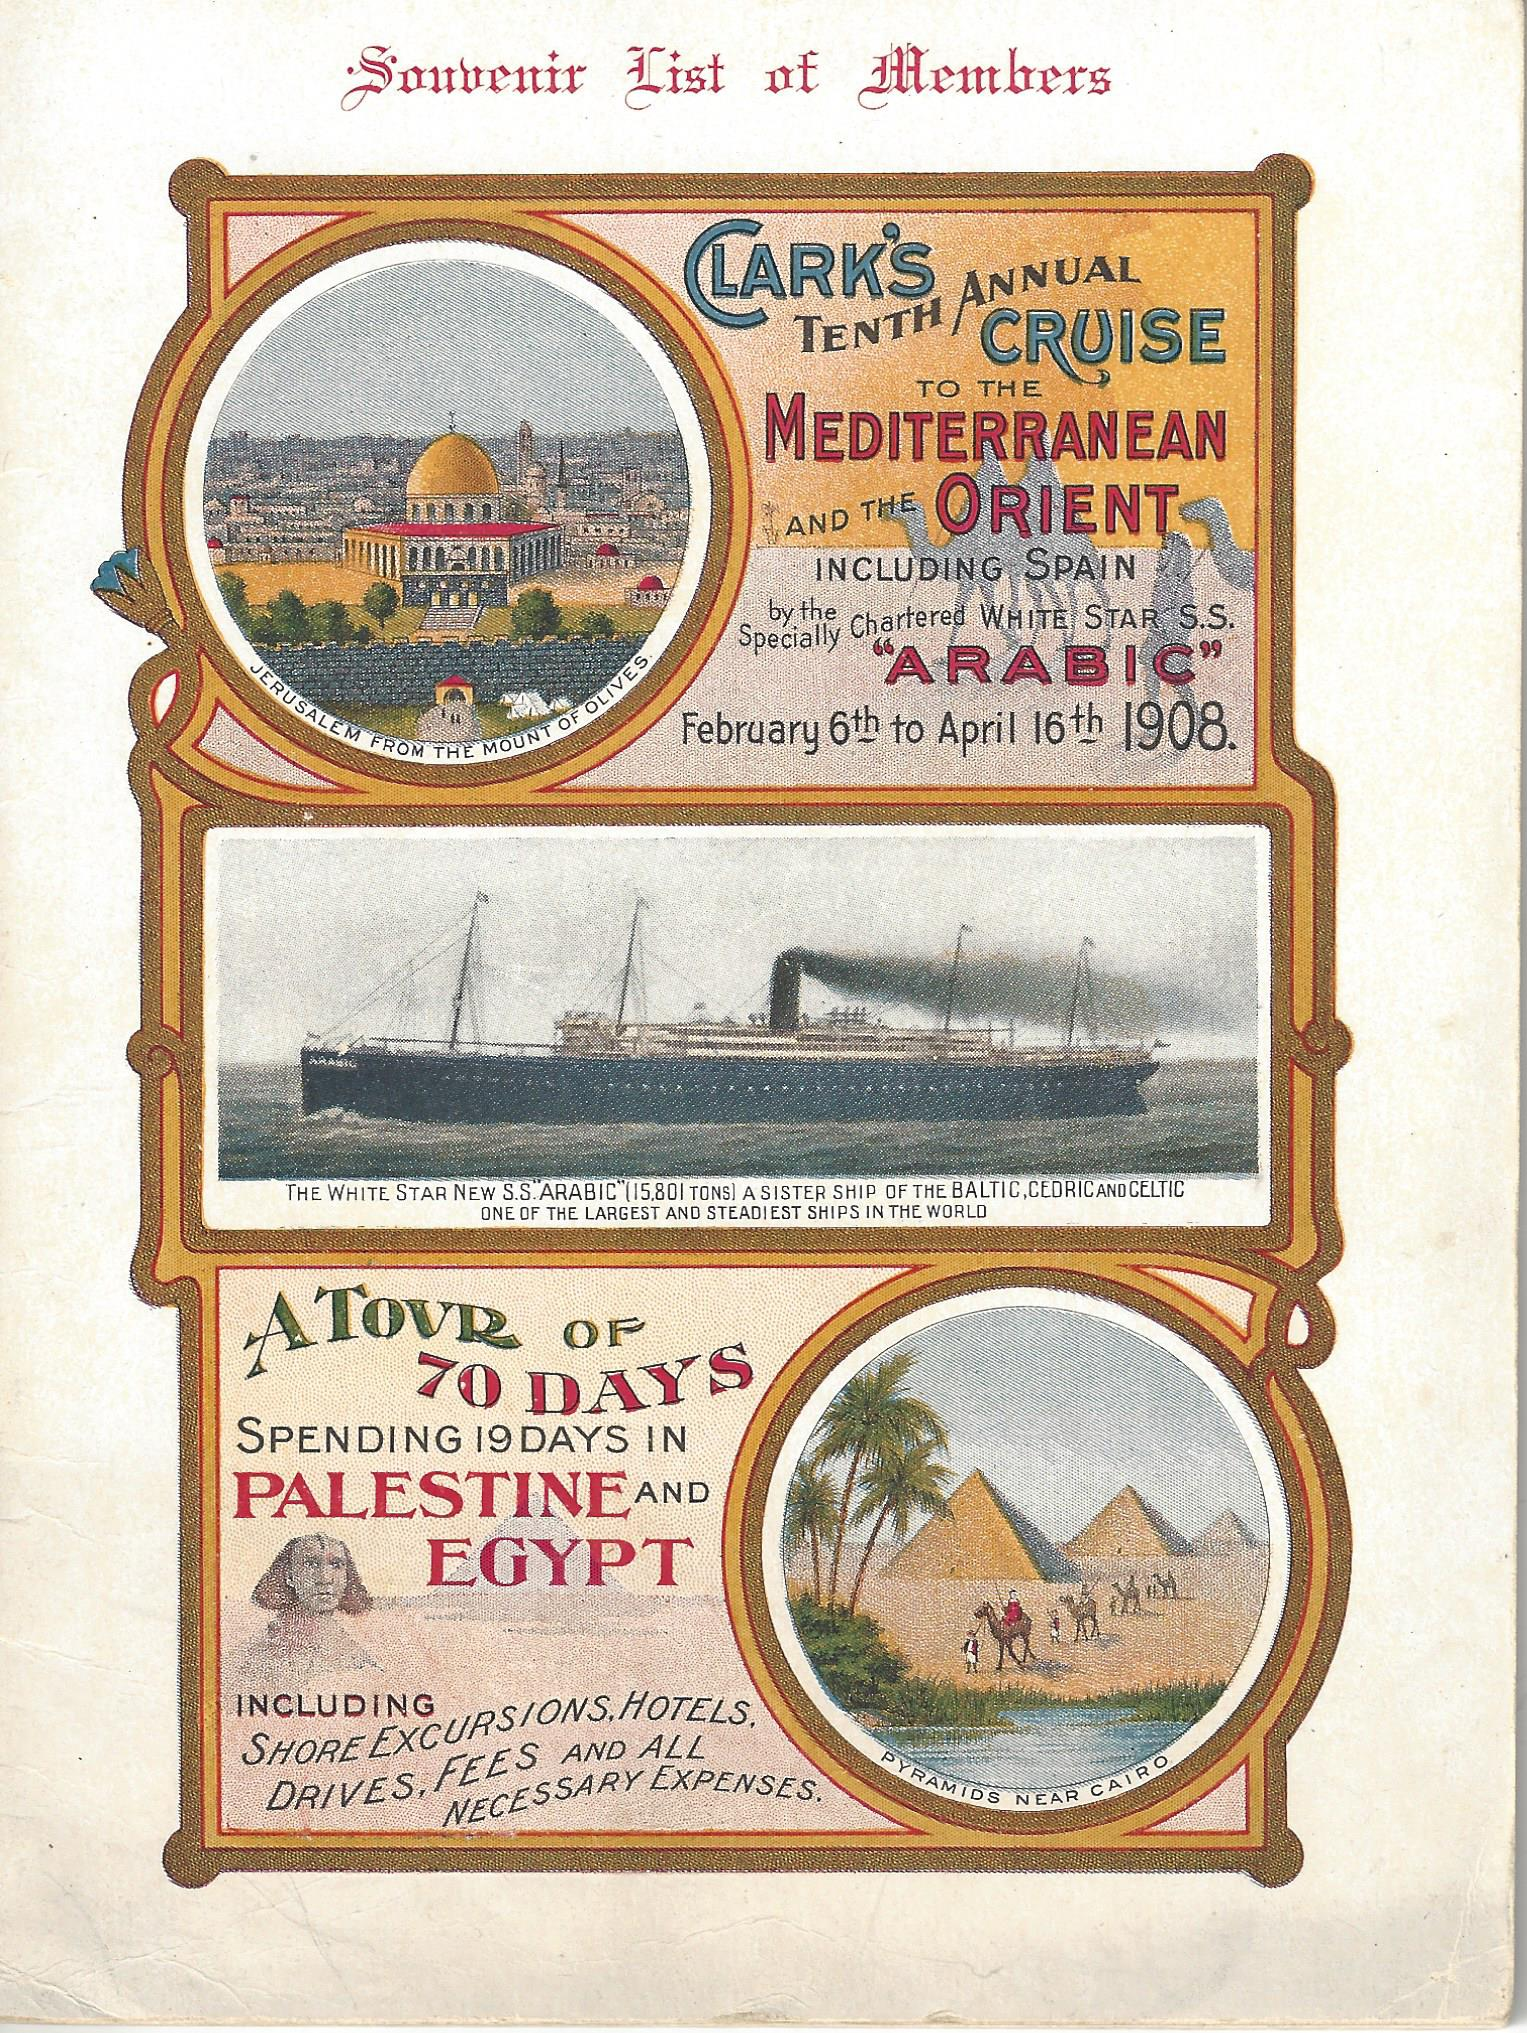 Clark's tenth annual cruise to the Mediterannean and the Orient, 1908 (cover)